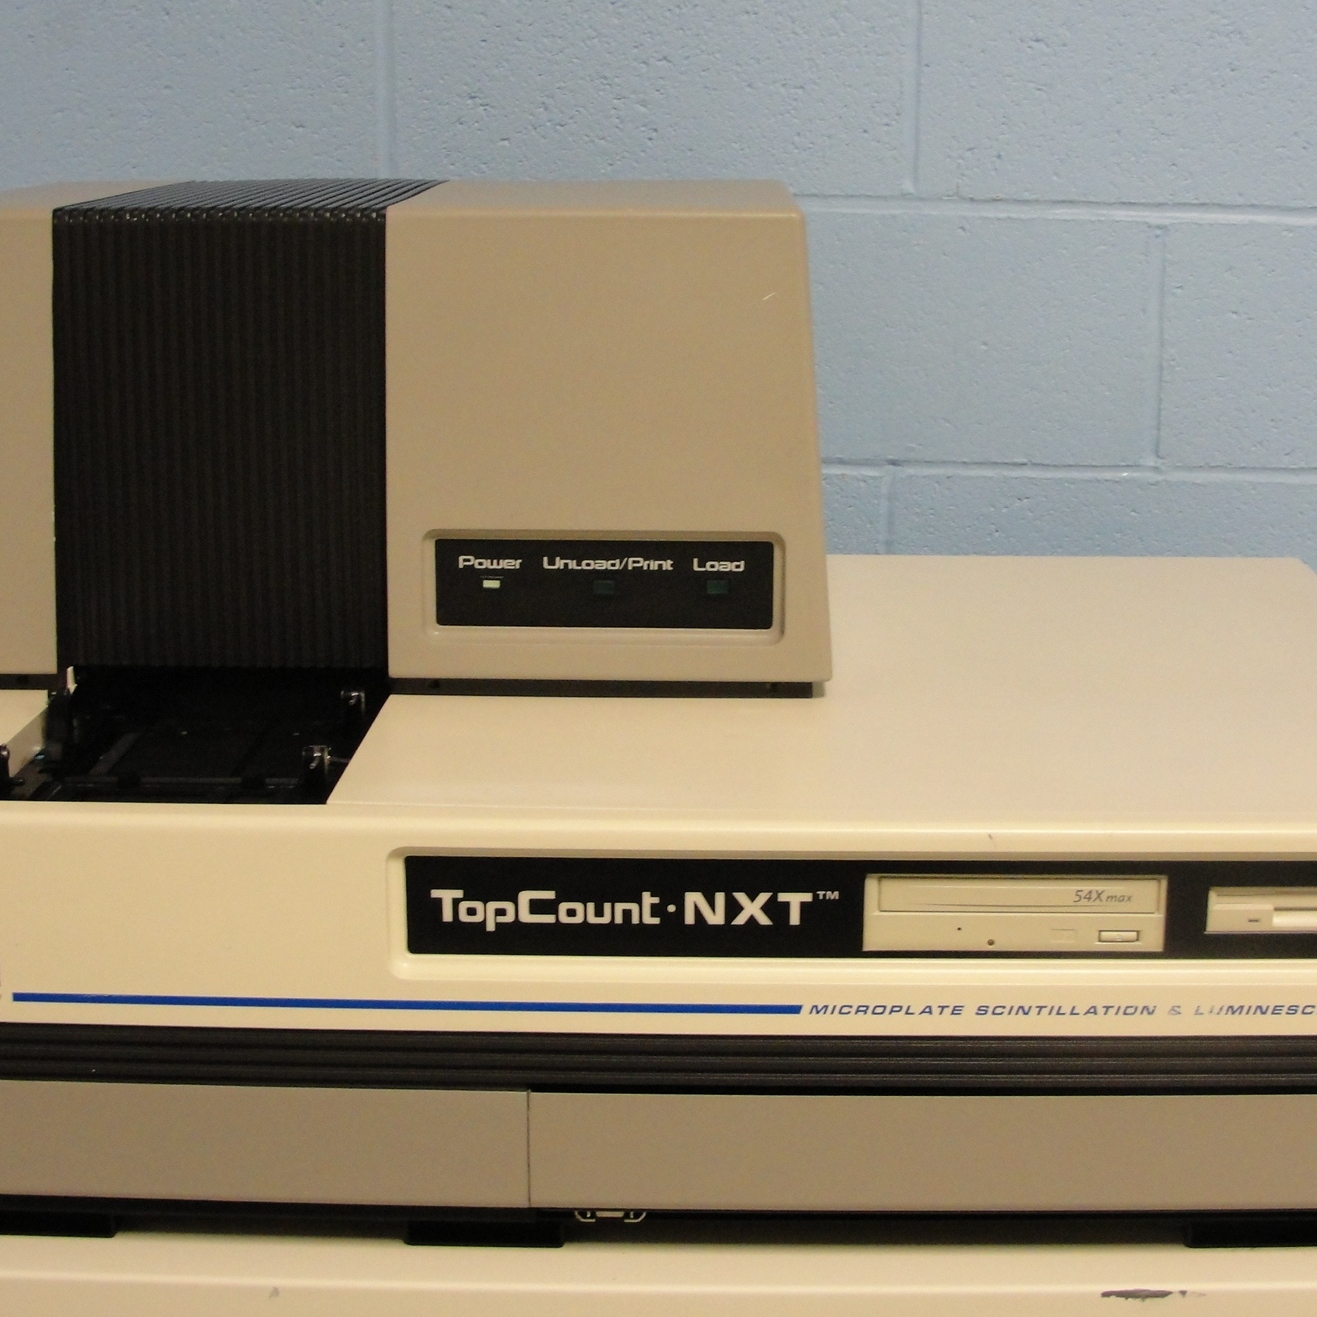 Packard BioScience Company C991200 TopCount NXT Microplate Scintillation and Luminescence Counter Image